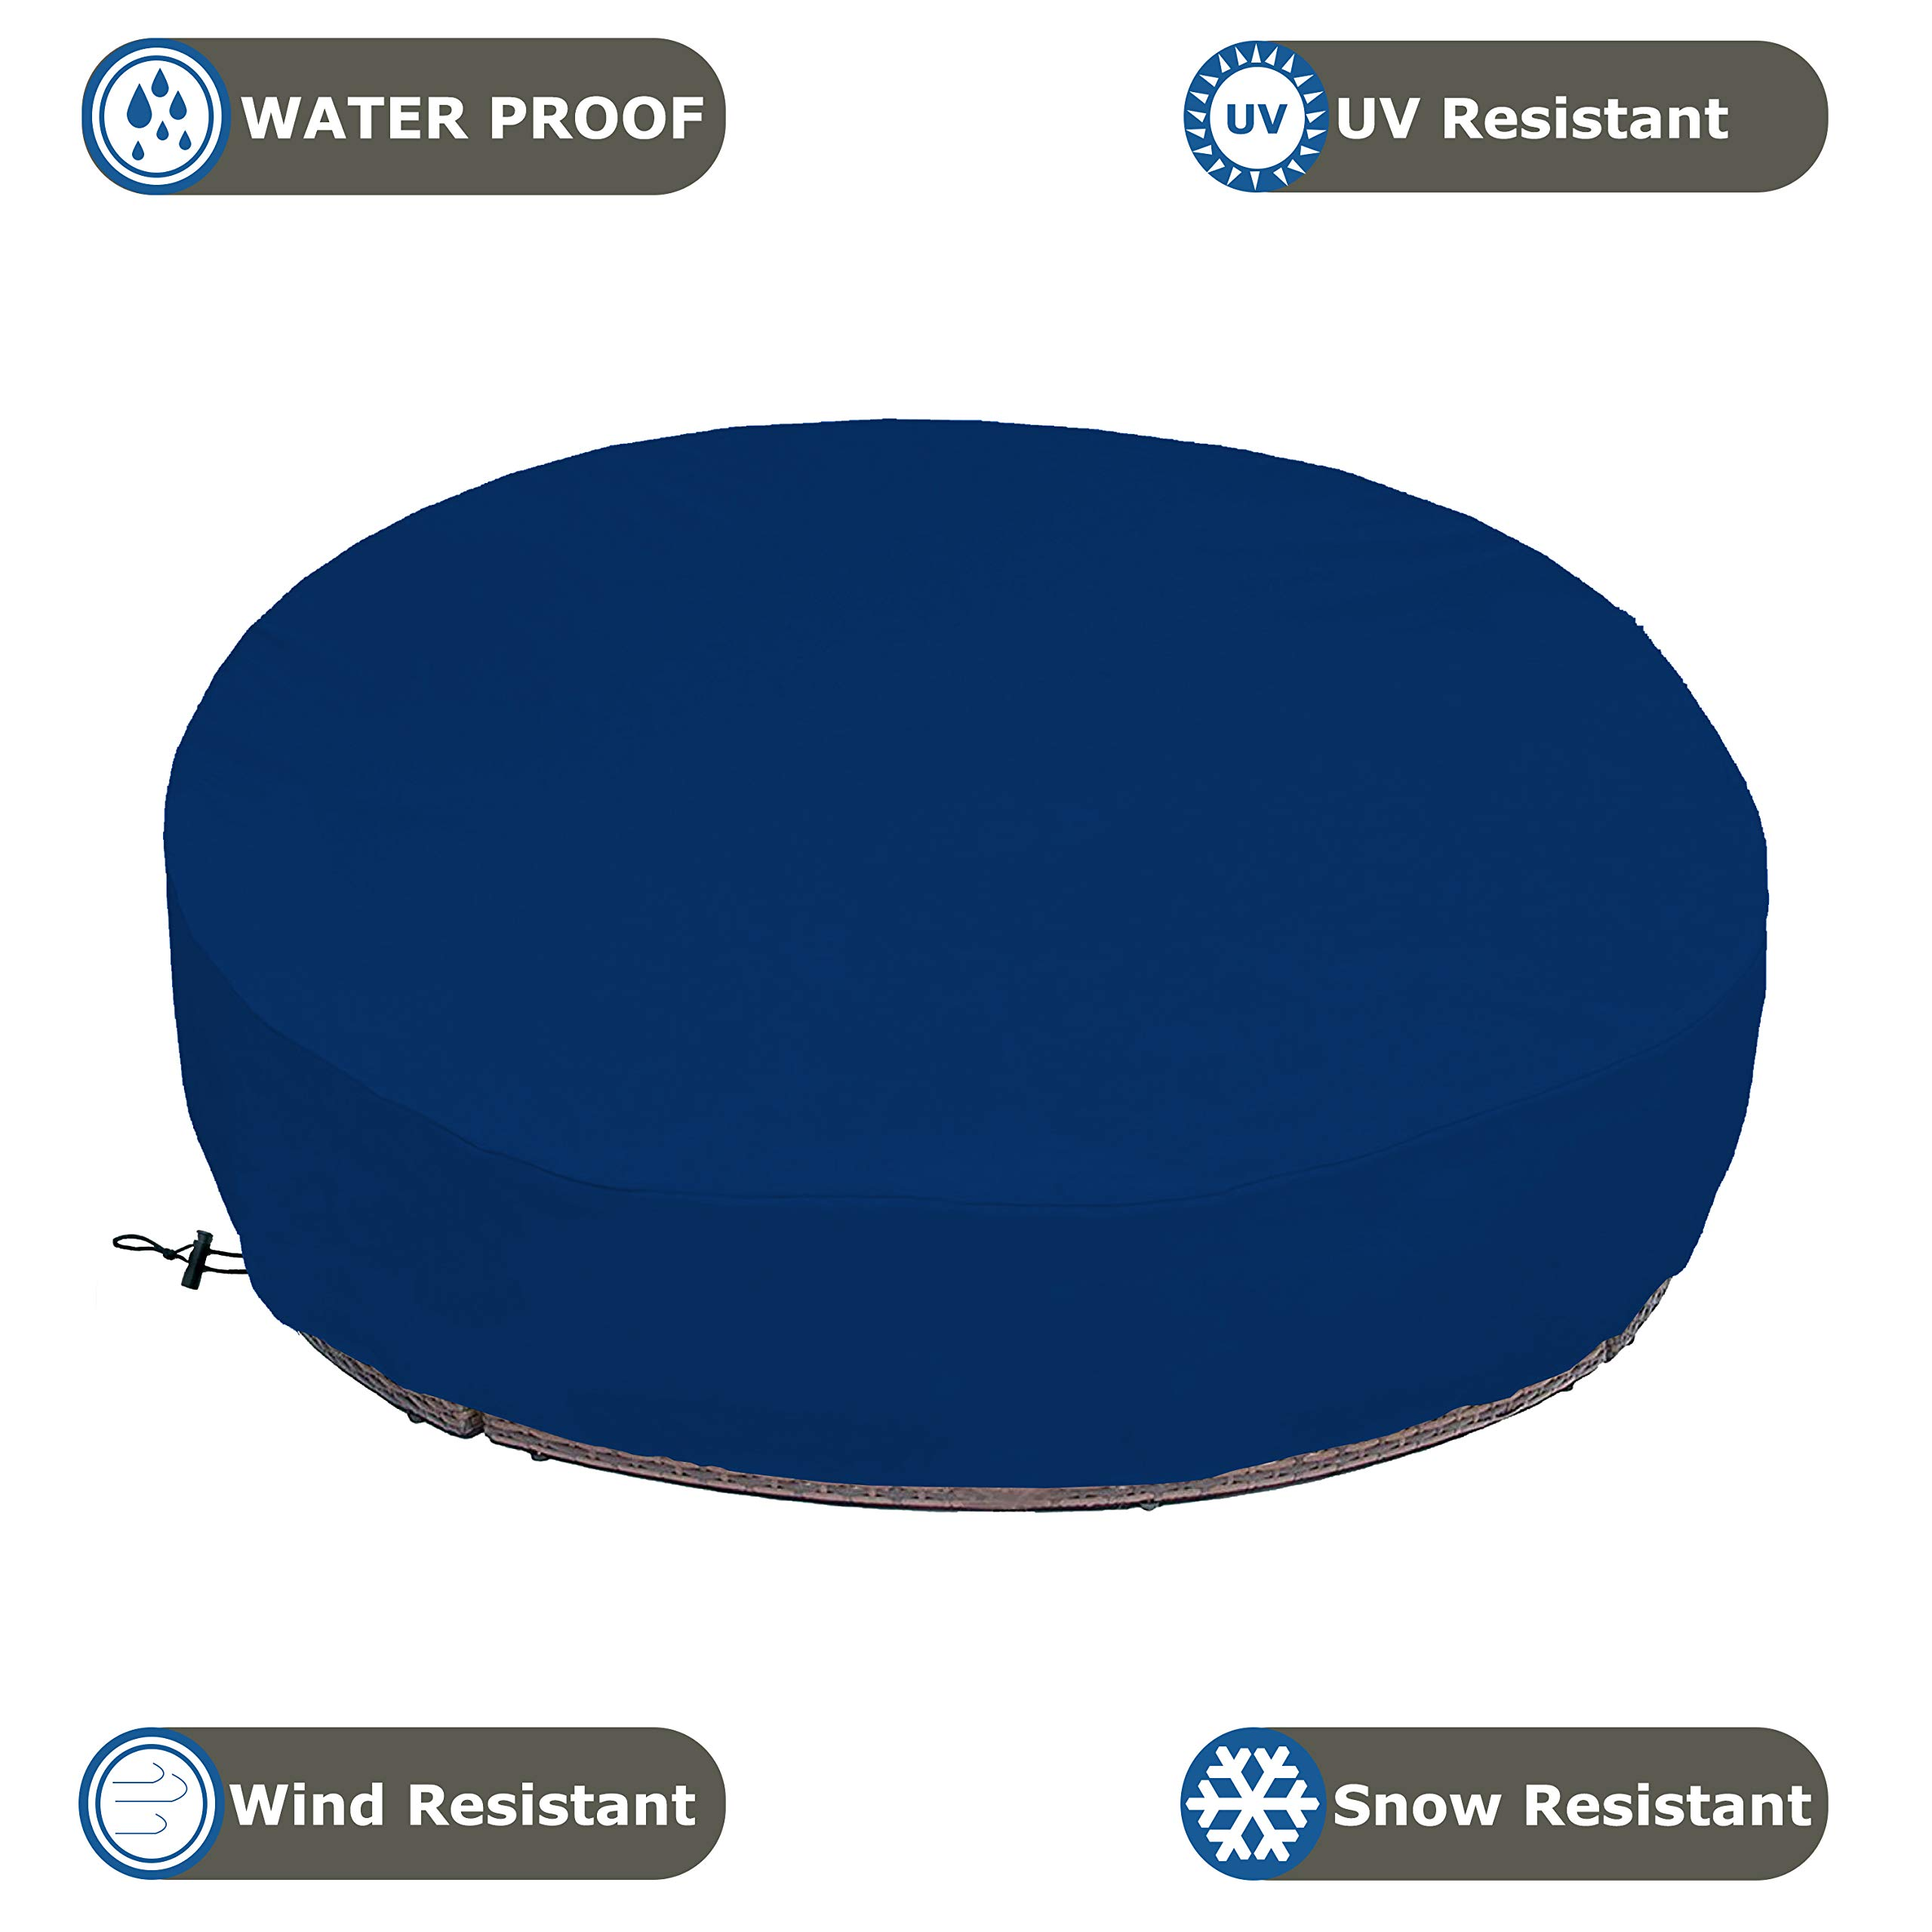 COVERS & ALL Outdoor Daybed Cover 18 Oz Waterproof - 100% UV & Weather Resistant Patio Furniture Cover with Air Pockets and Drawstring for Snug fit (Blue) by COVERS & ALL (Image #4)